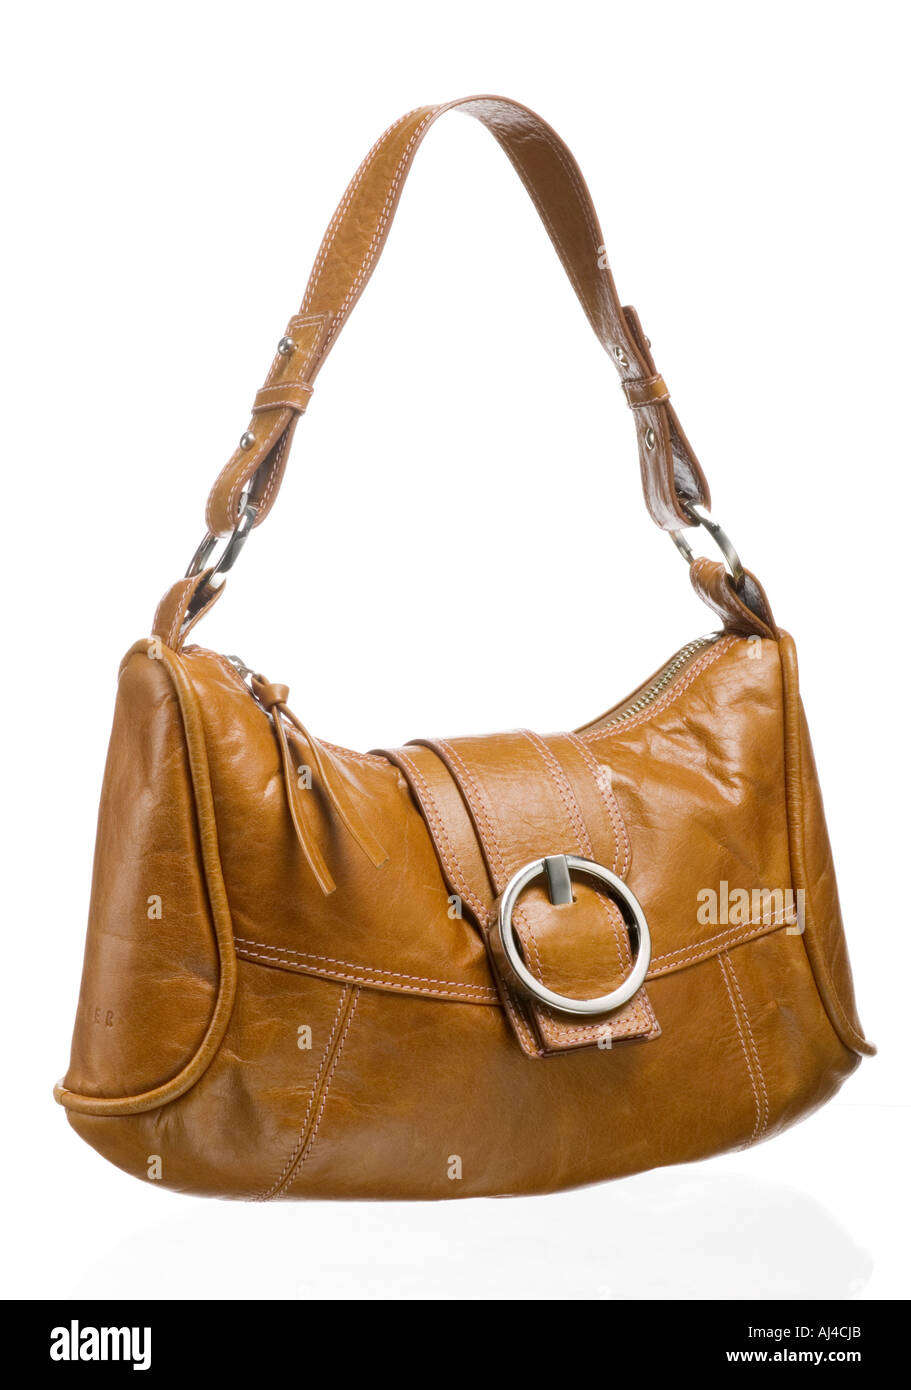 Ladies leather handbag with shoulder strap and buckle - Stock Image